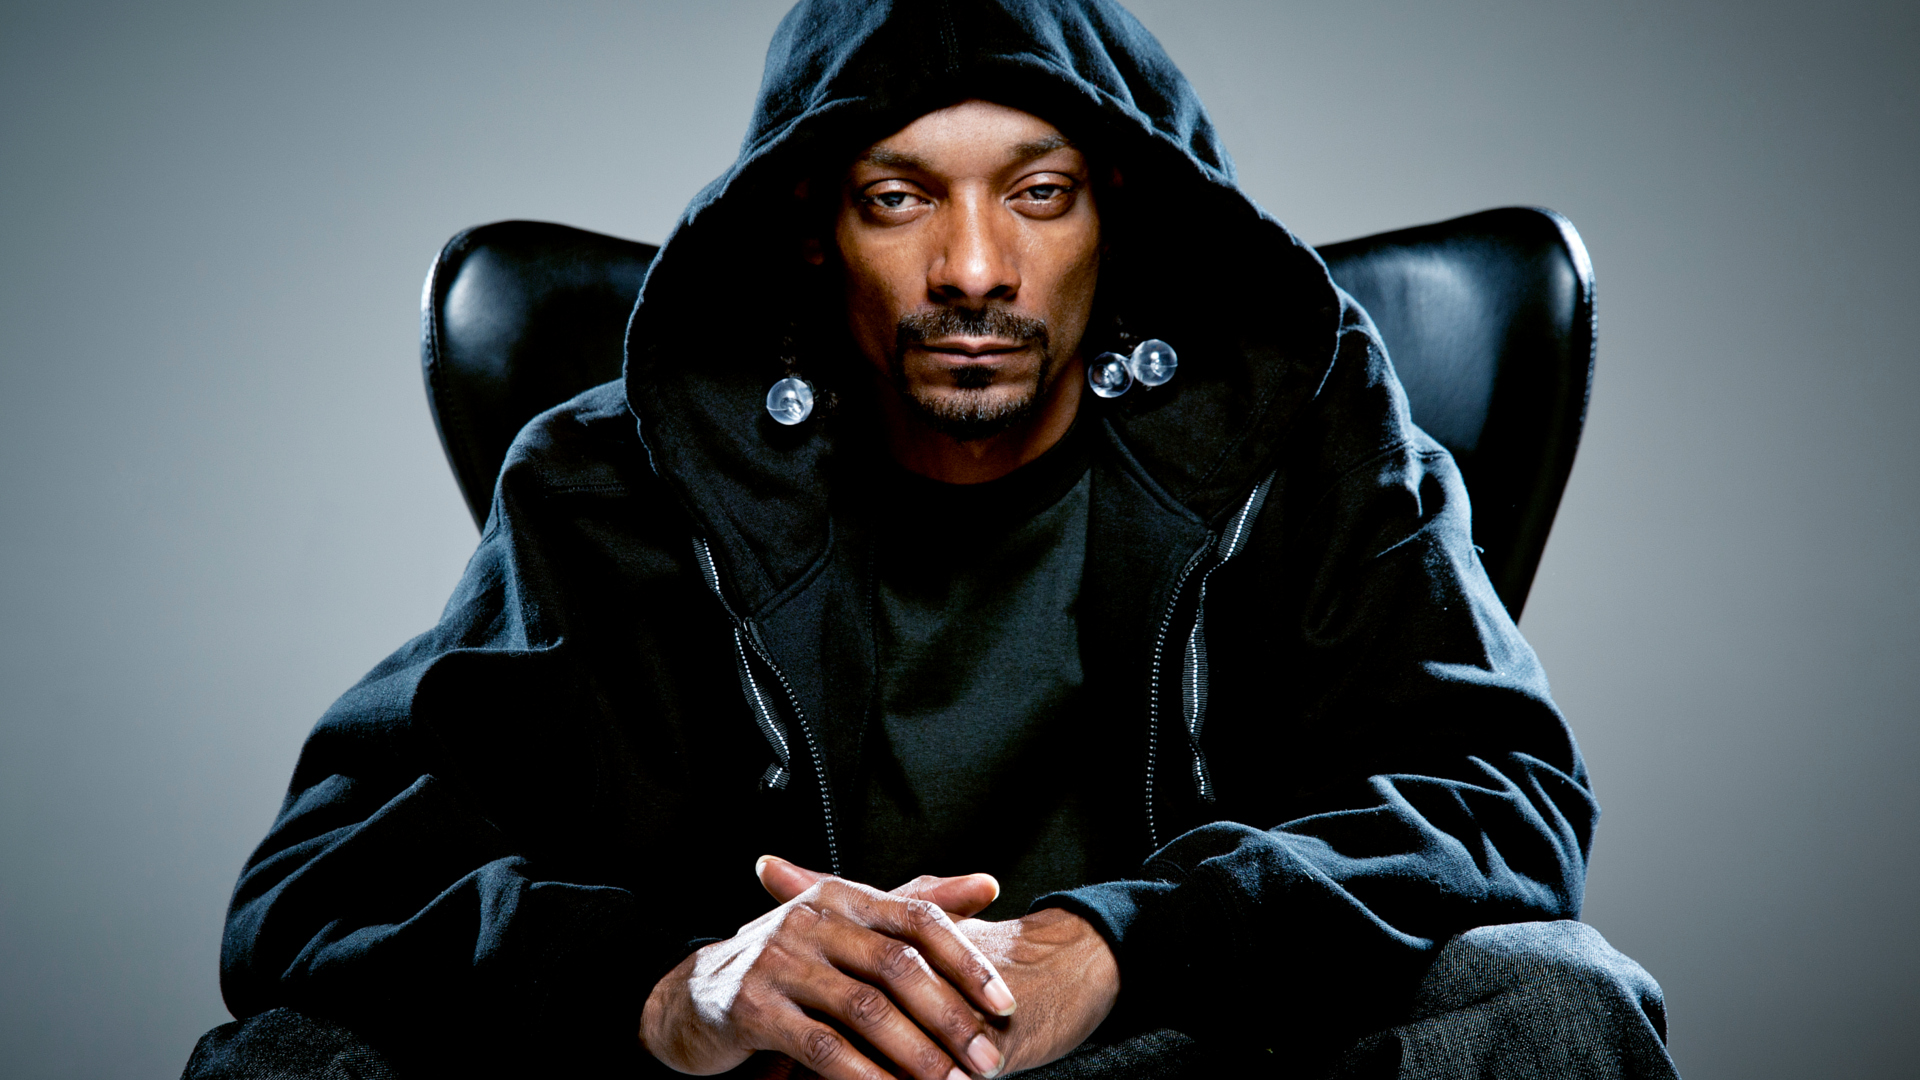 Snoop Dogg (Lion's) Launches His Own Pot Products